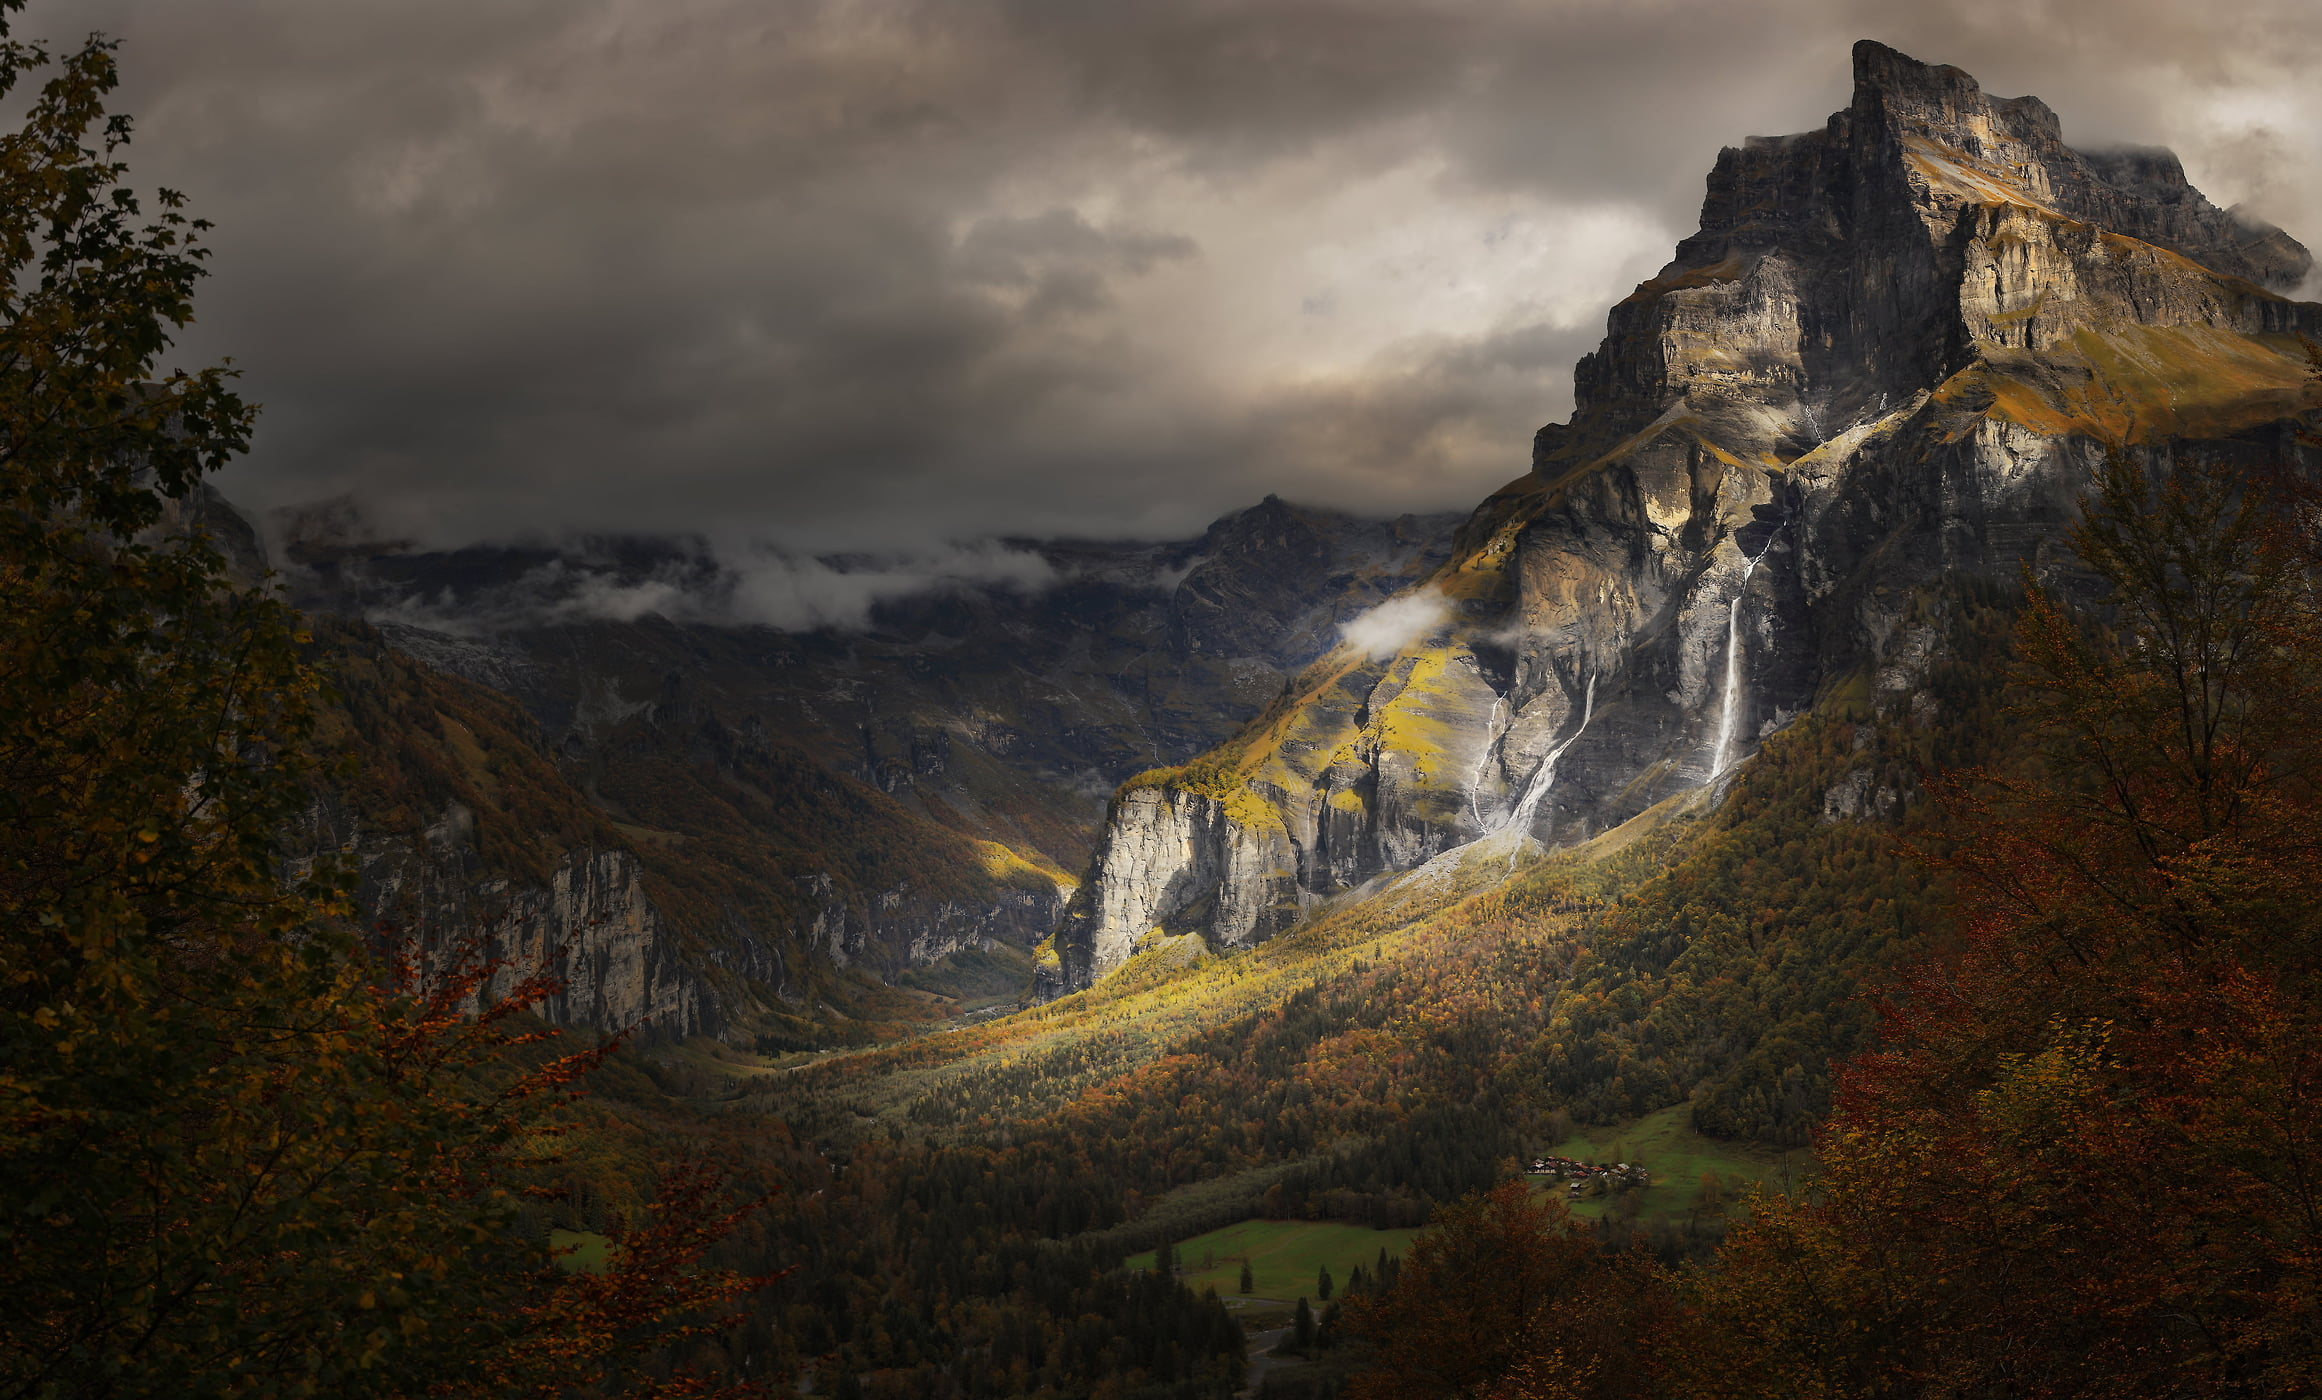 101 megapixels! A very high resolution, large-format VAST photo of a dark landscape with a mountain, waterfalls, and forests; fine art print created by Alexandre Deschaumes in Sixt fer à cheval, France